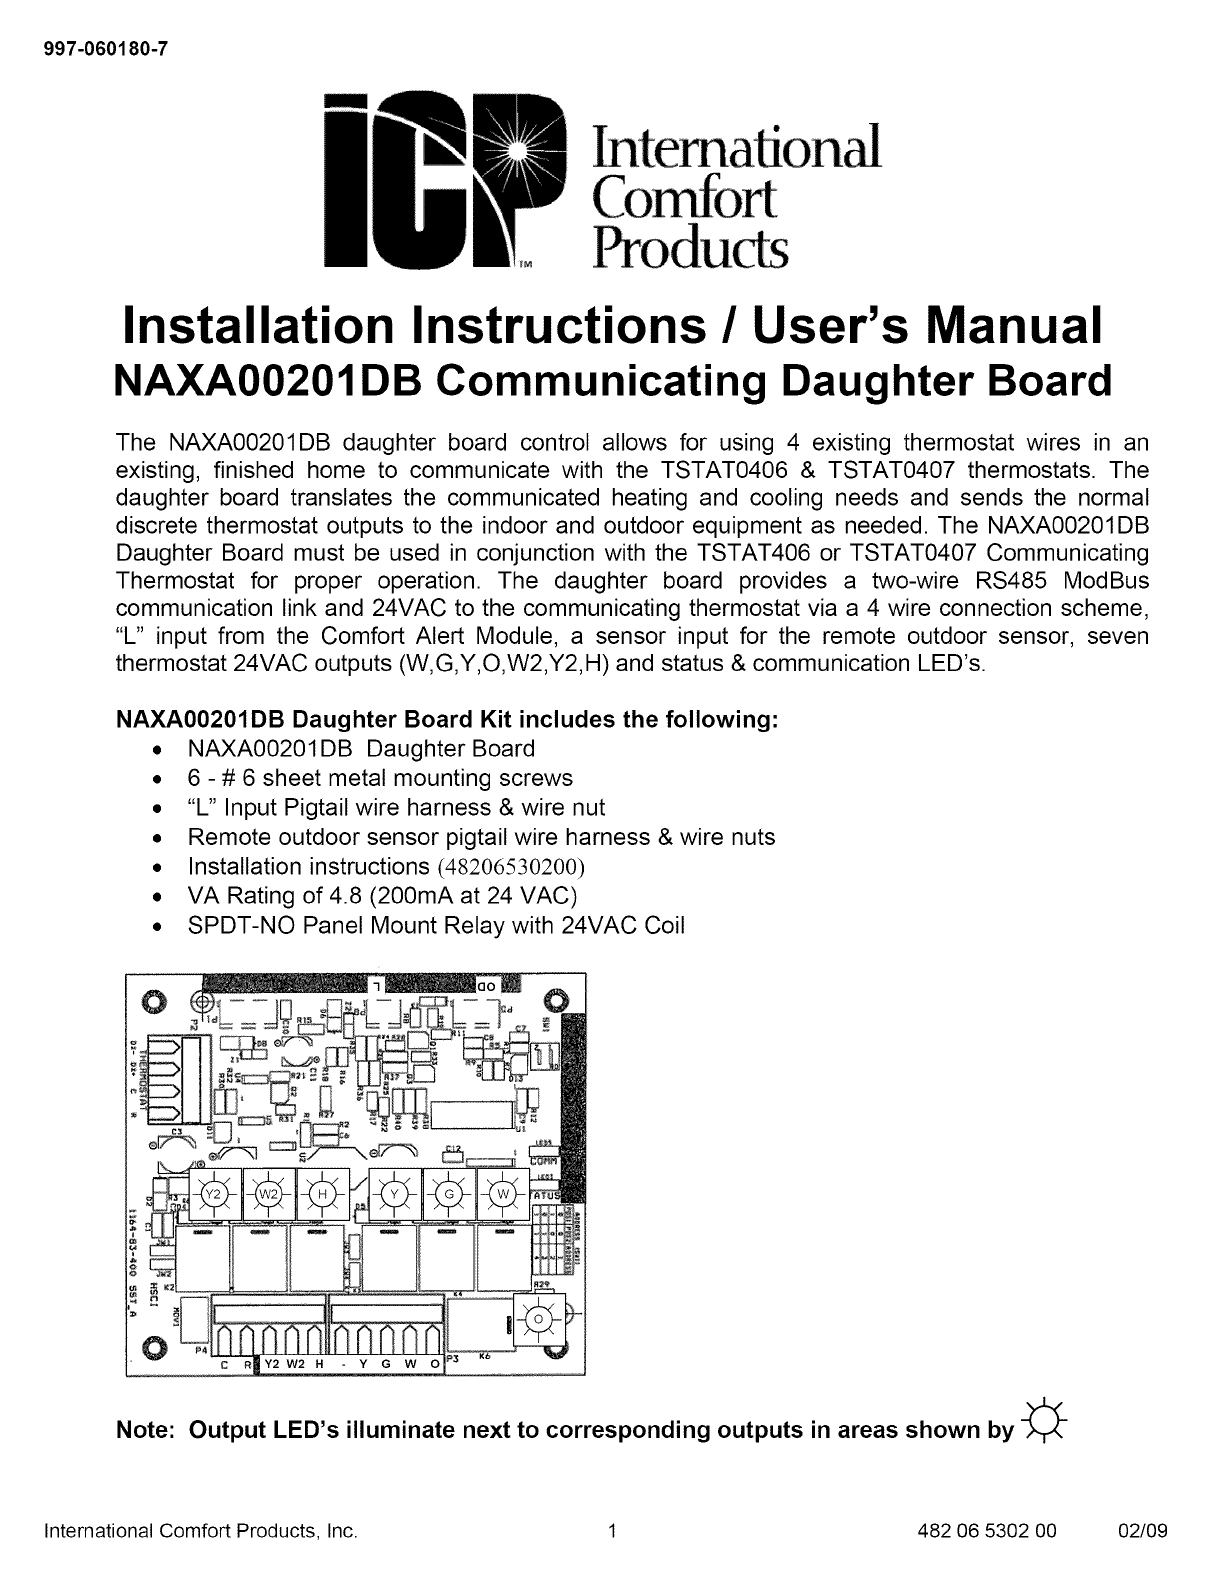 ICP Controls And HVAC Accessories Manual L0909228 on